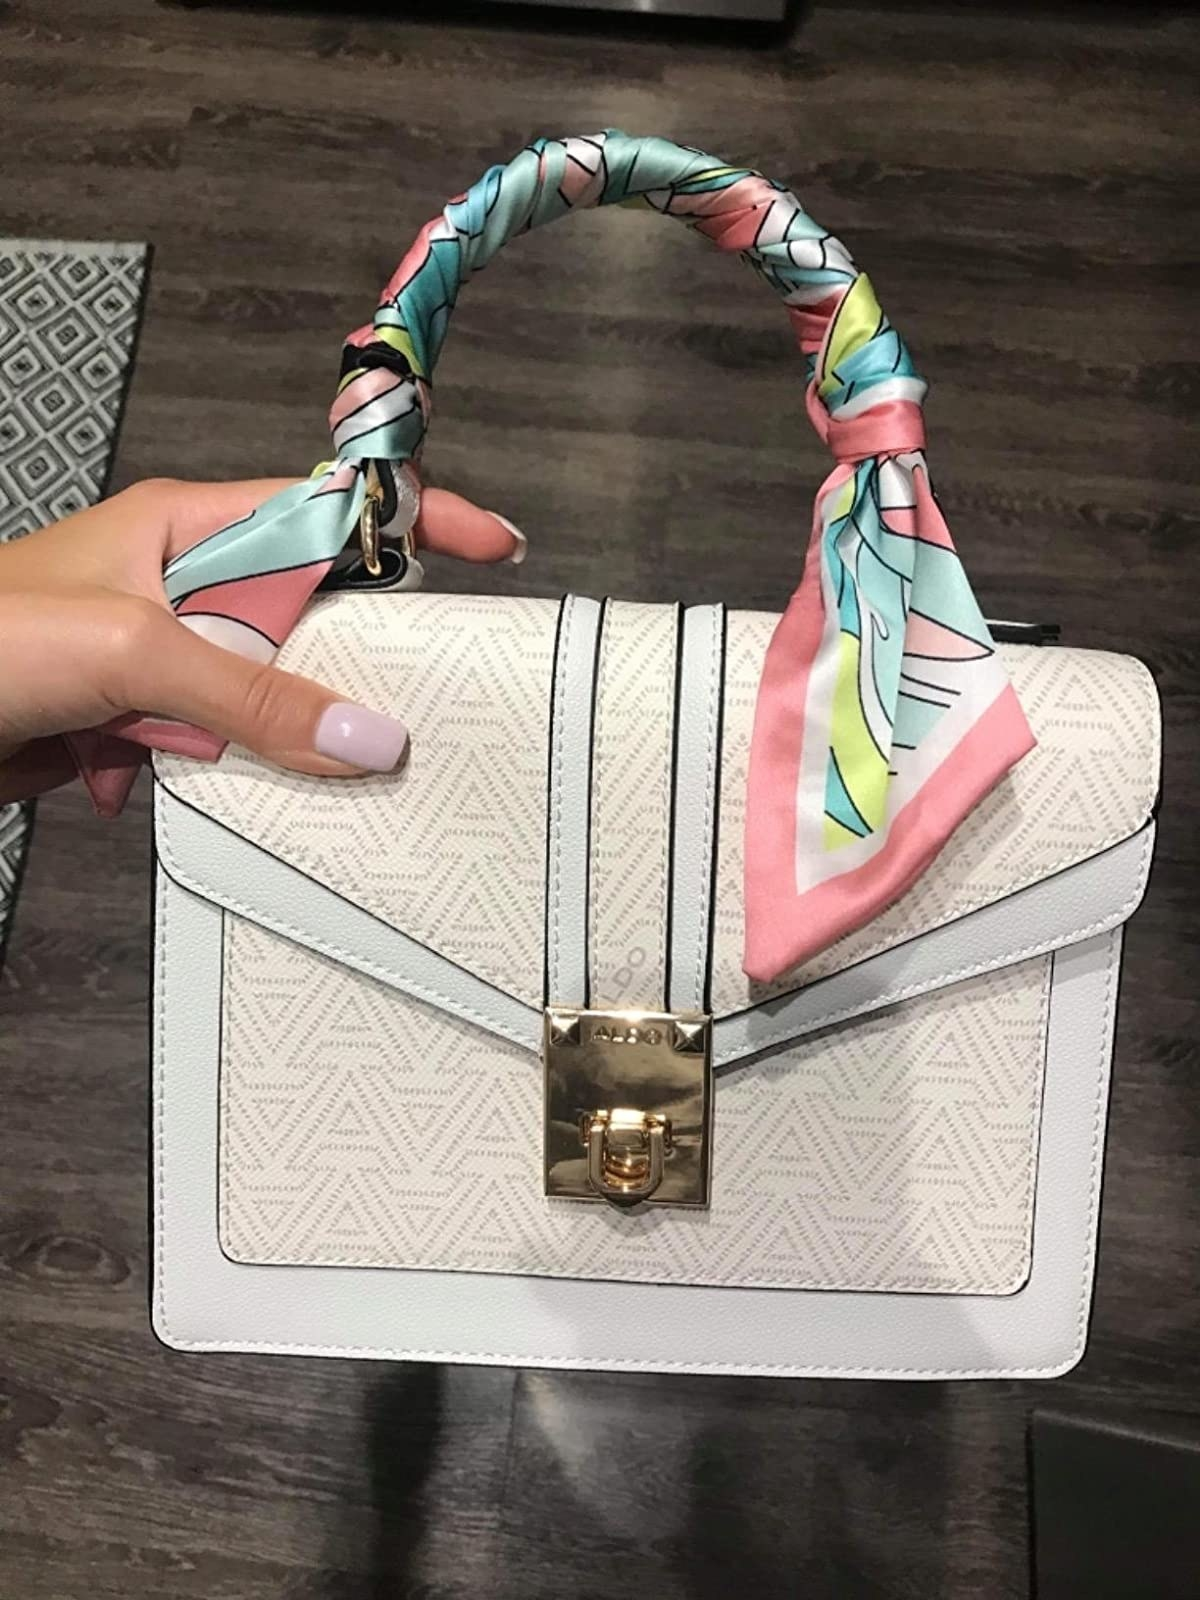 A hand holding the small square white bag with a logo print and green, coral, white, and mint print scarf around the handle